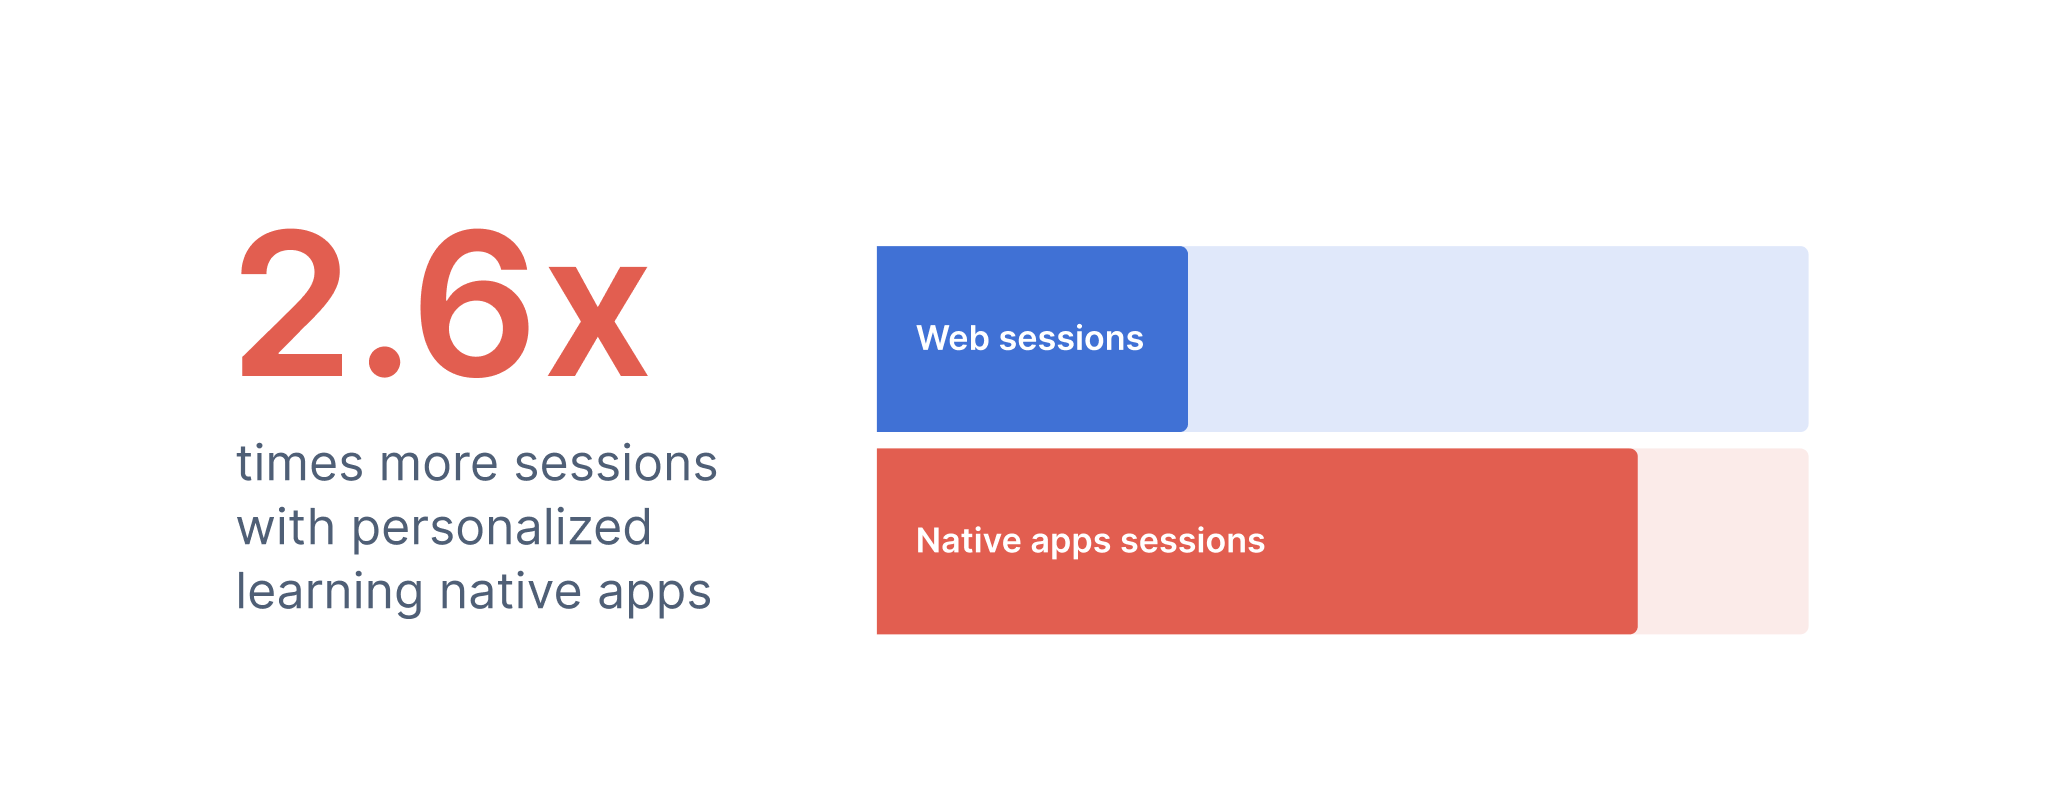 native apps versue web sessions